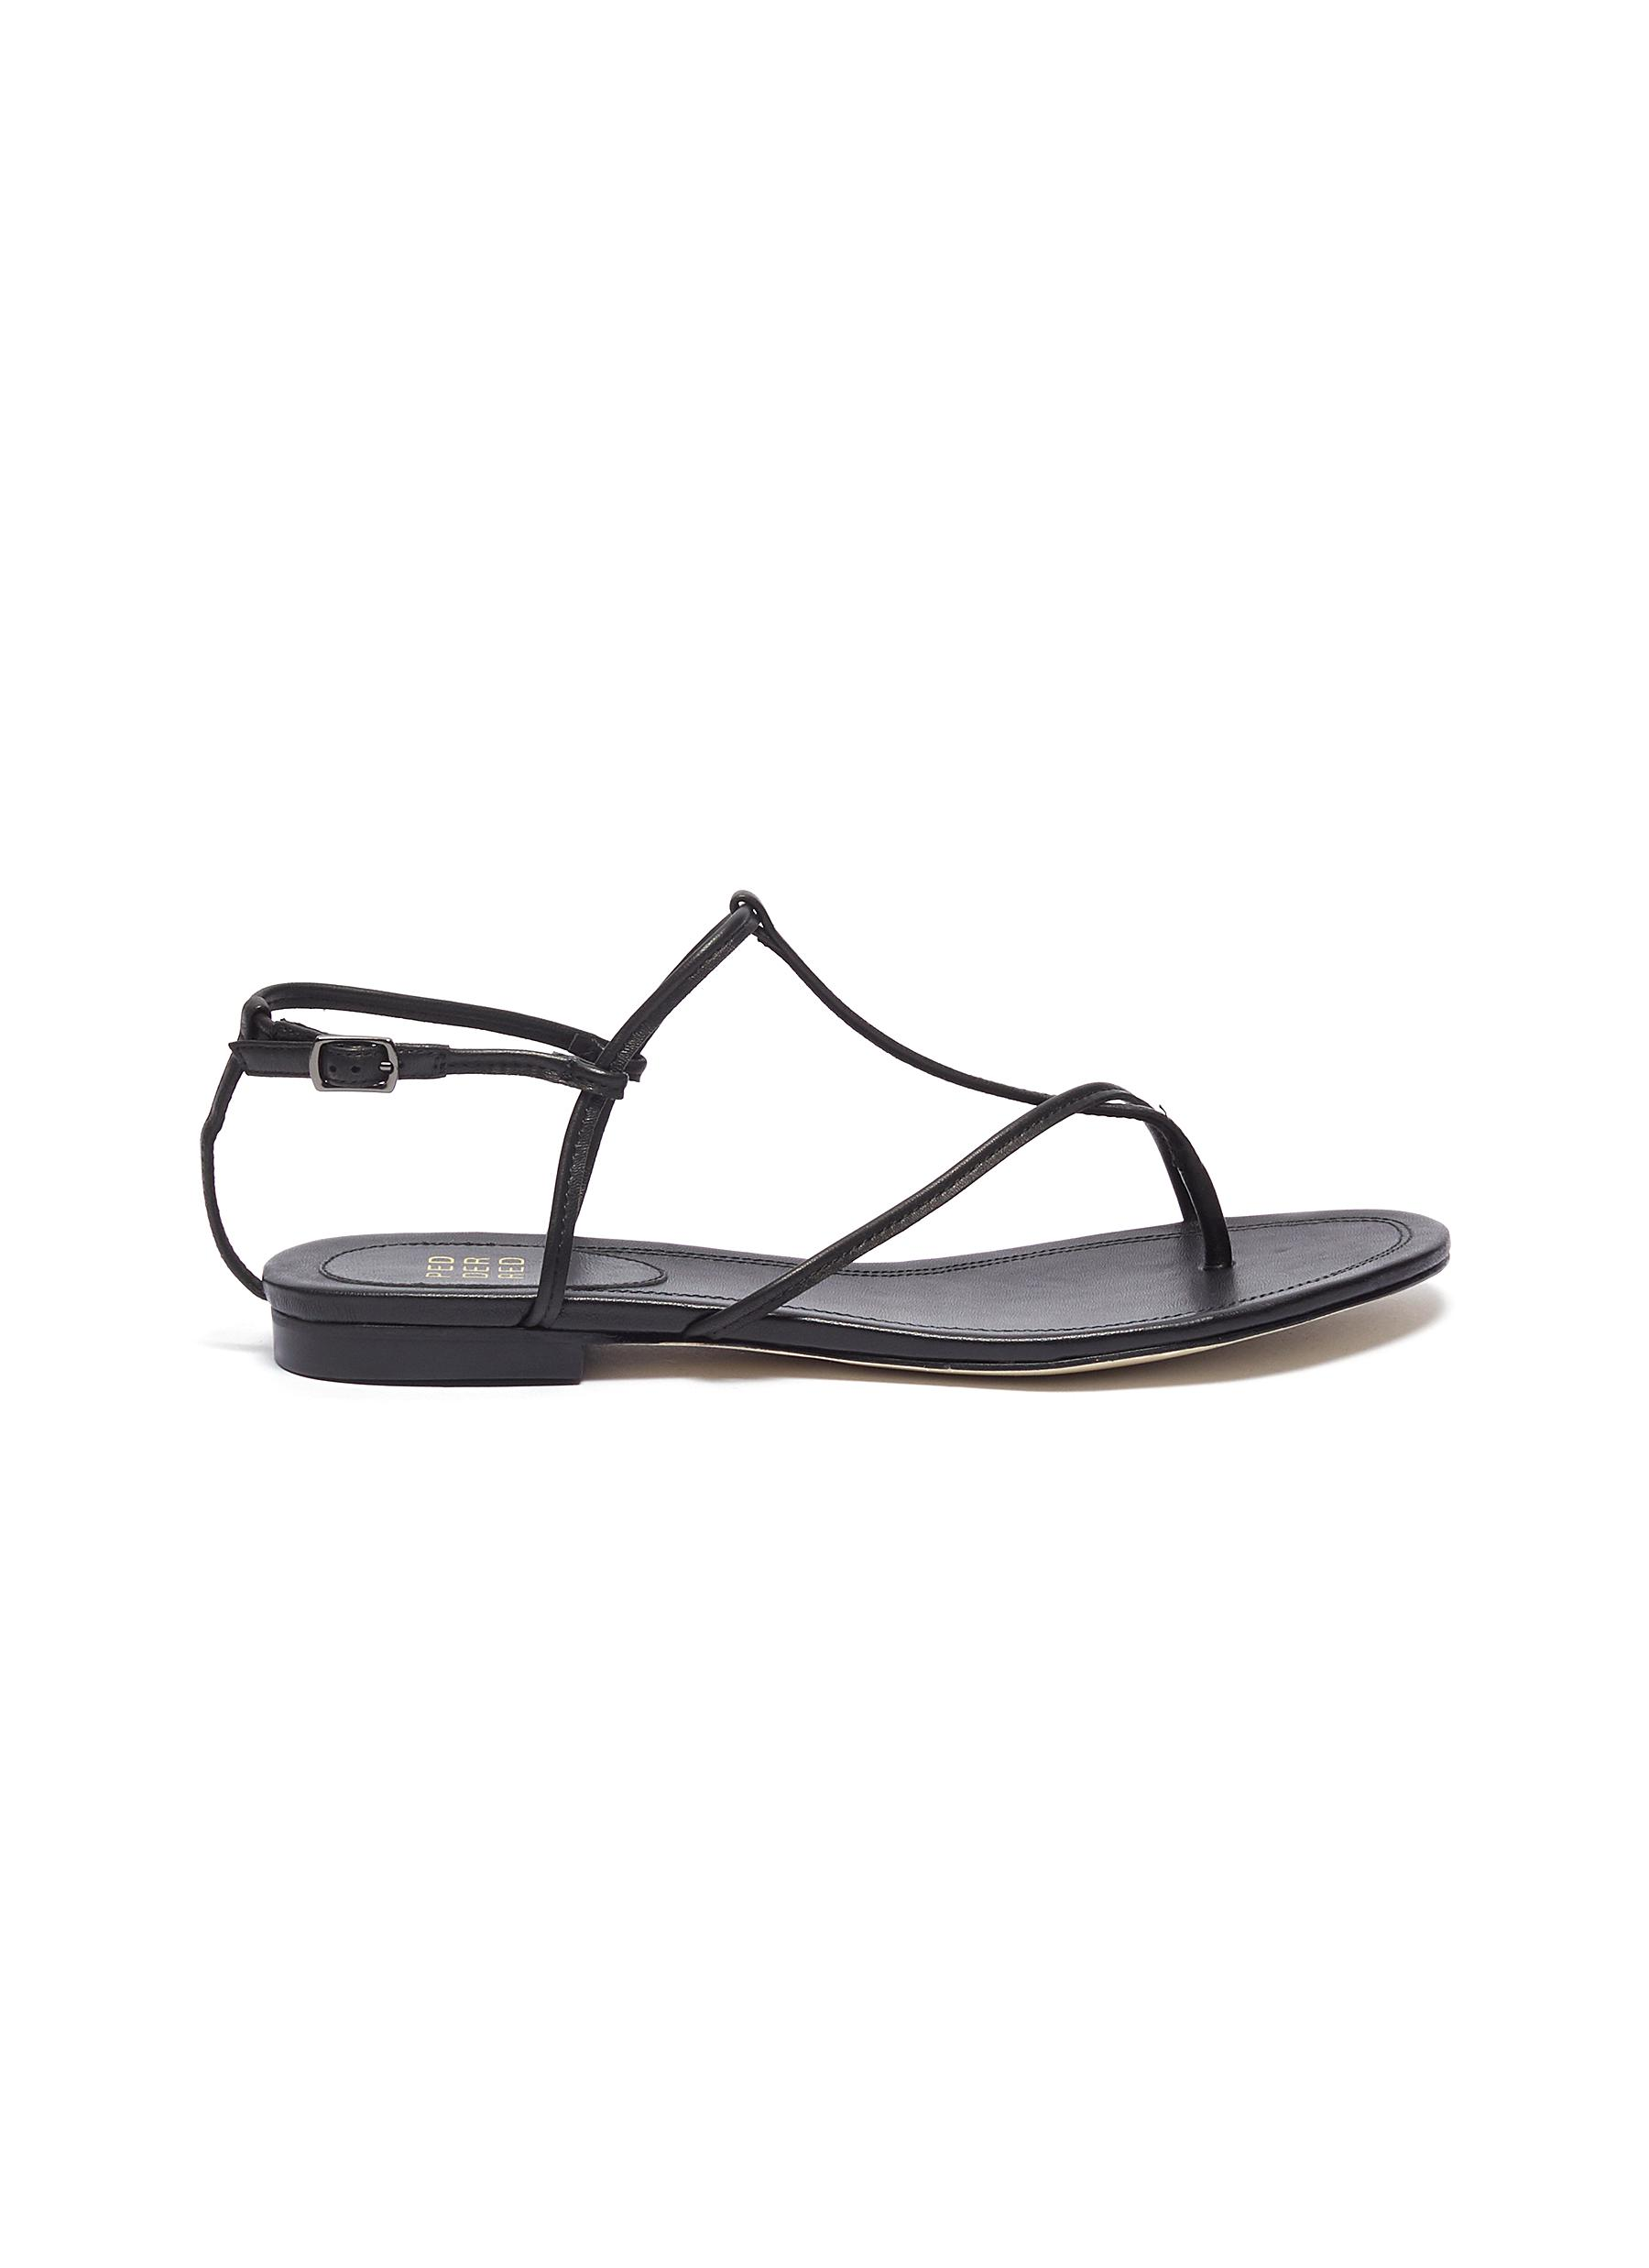 Caris cross strap leather thong sandals by Pedder Red